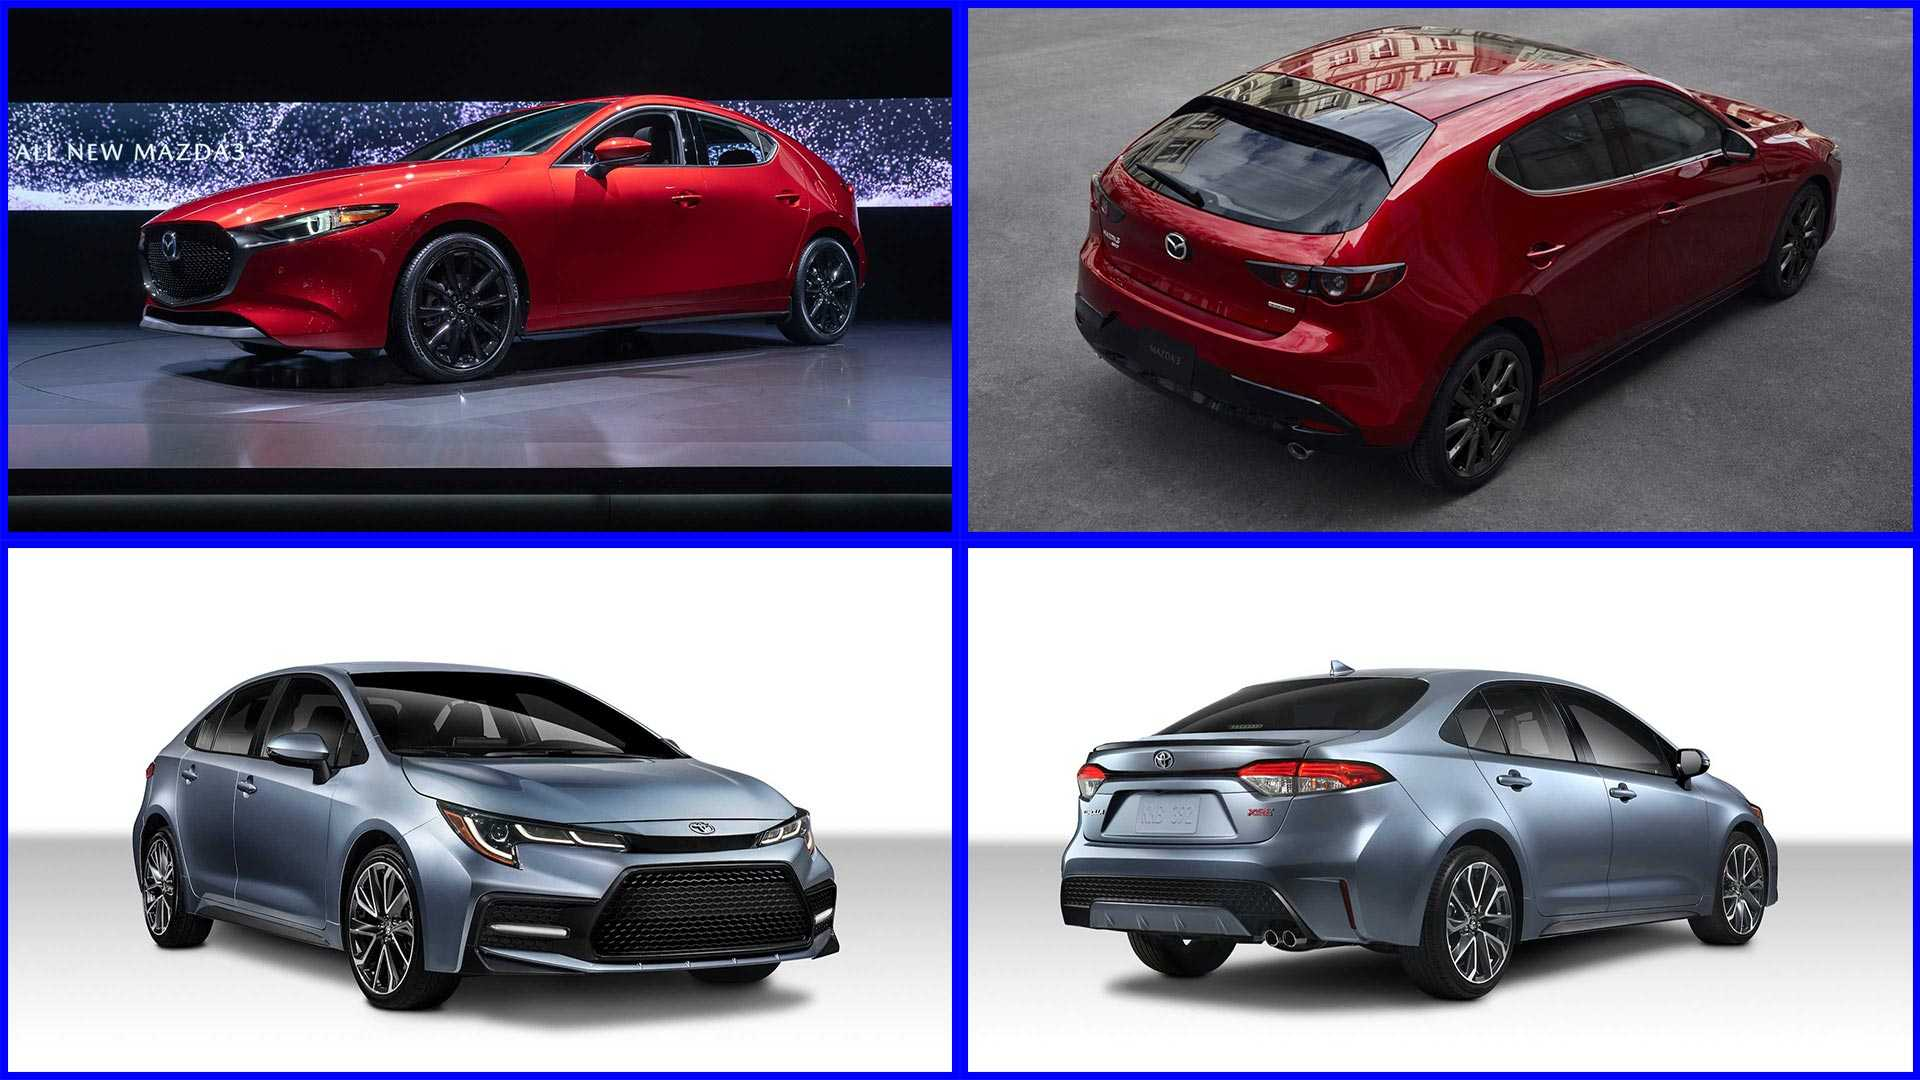 2020 Toyota Corolla Versus 2019 Mazda Mazda3 How Do They